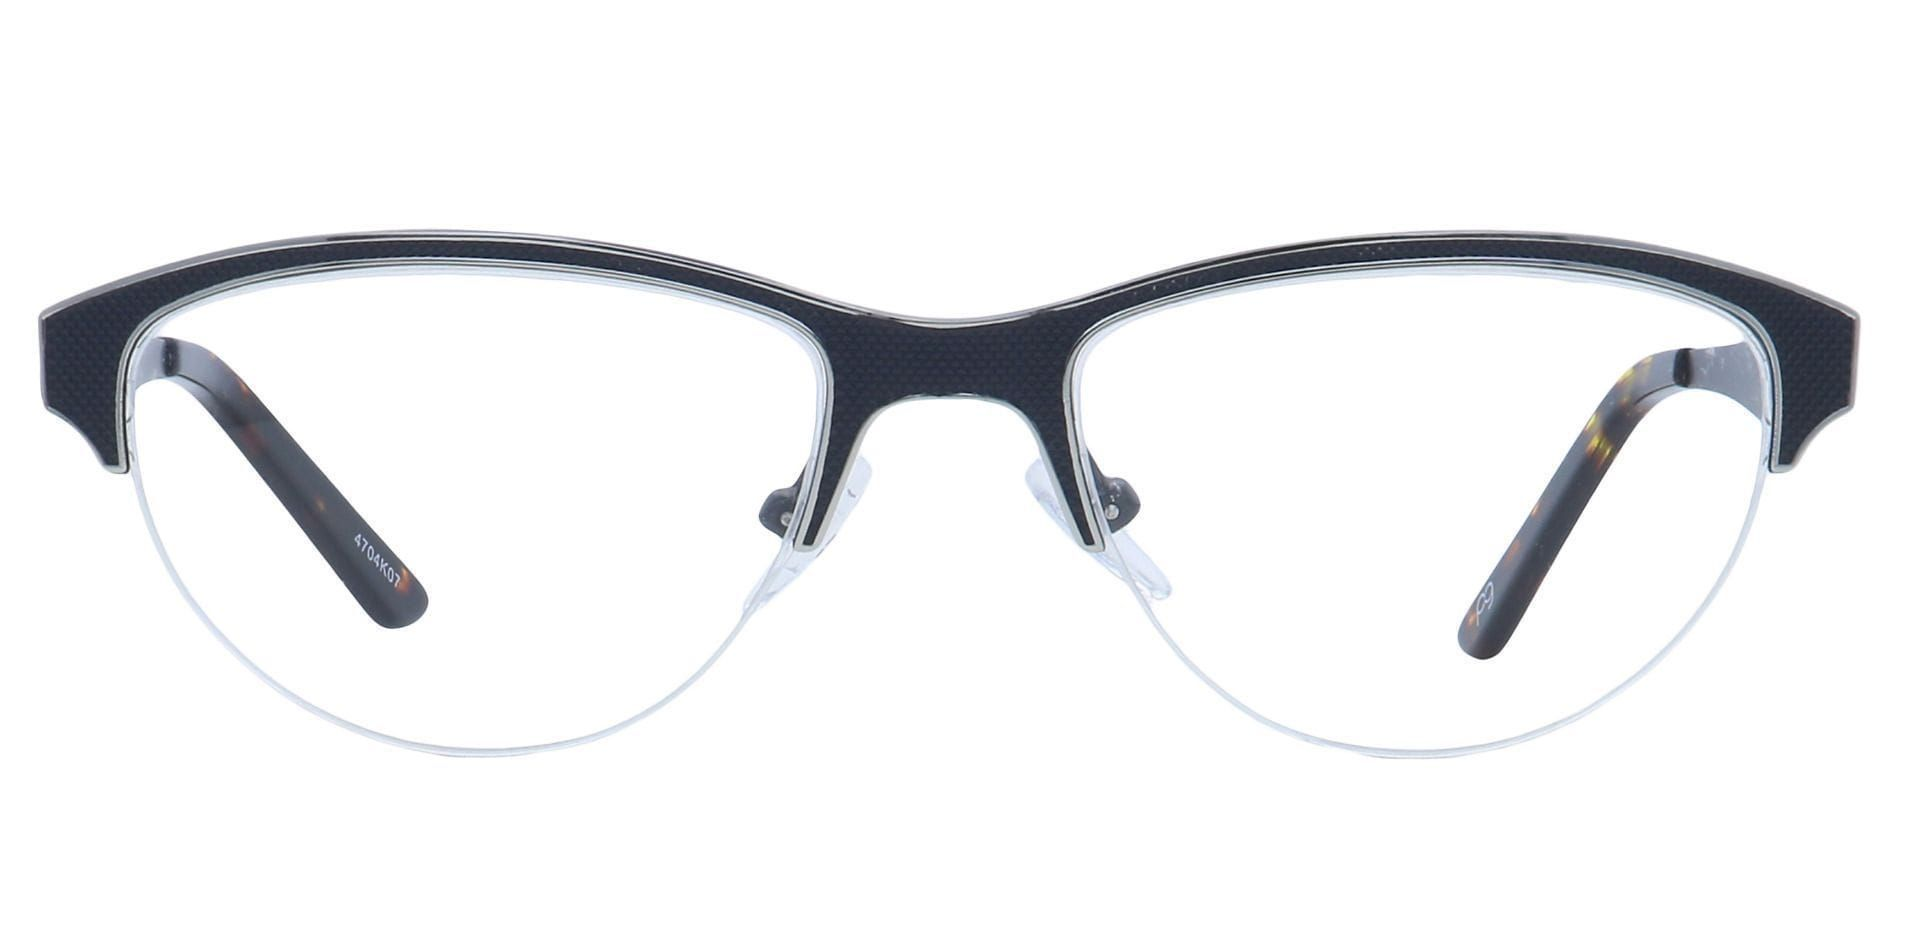 Joan Cat-Eye Non-Rx Glasses - Black